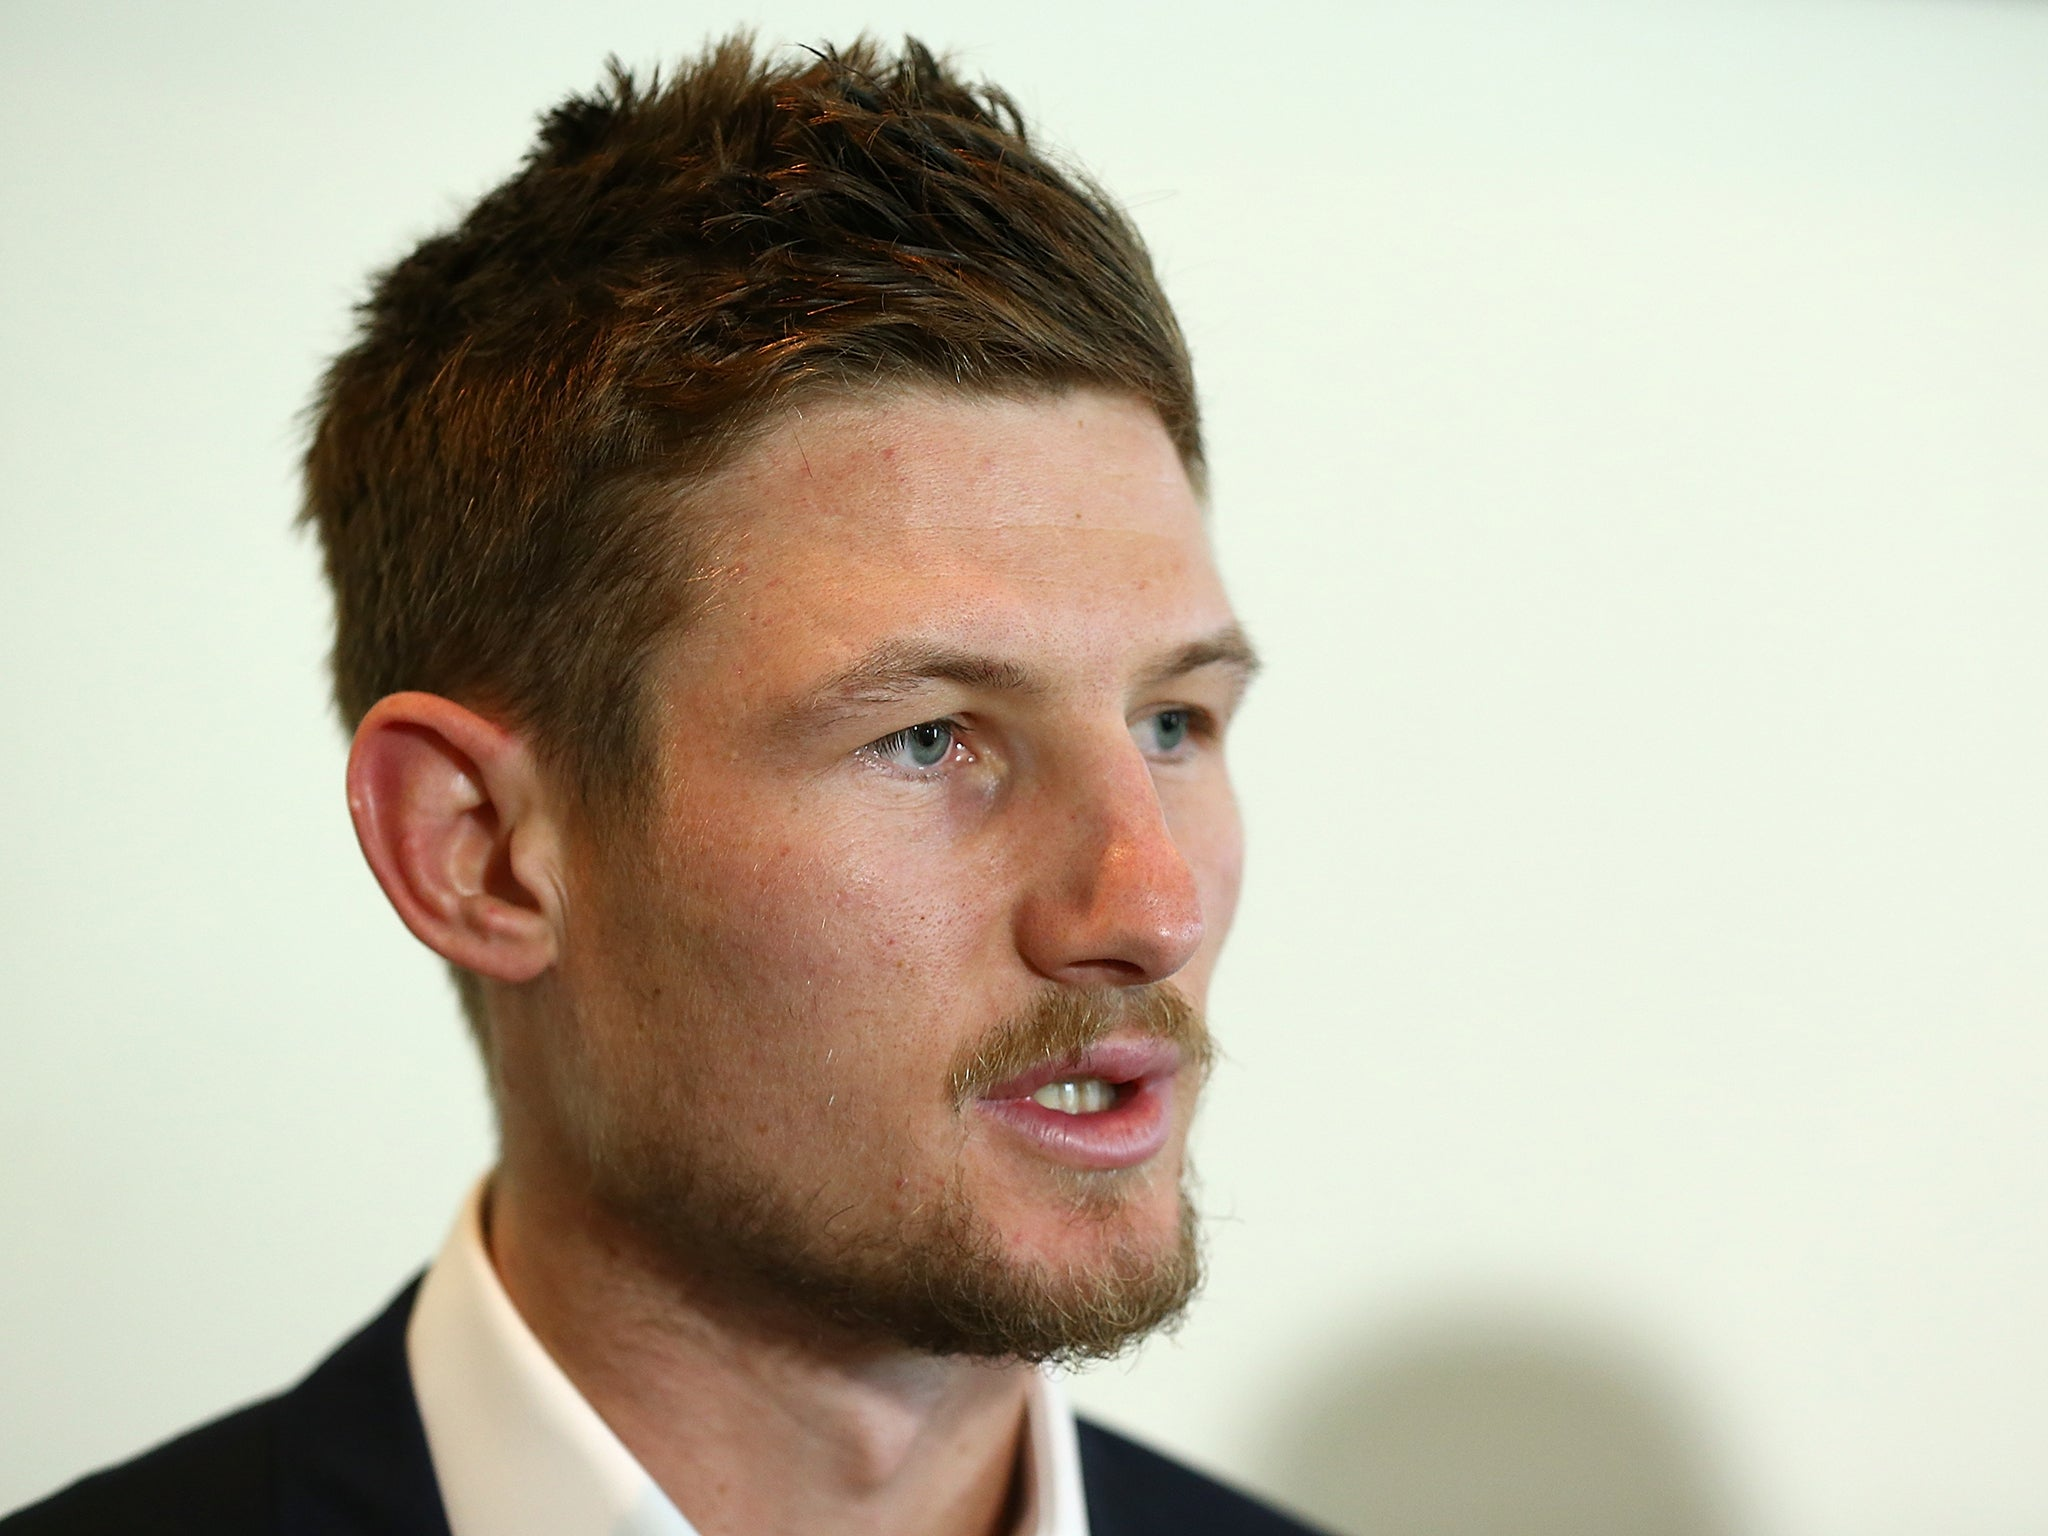 Cameron Bancroft Admits He Lied About Sticky Tape Claim As